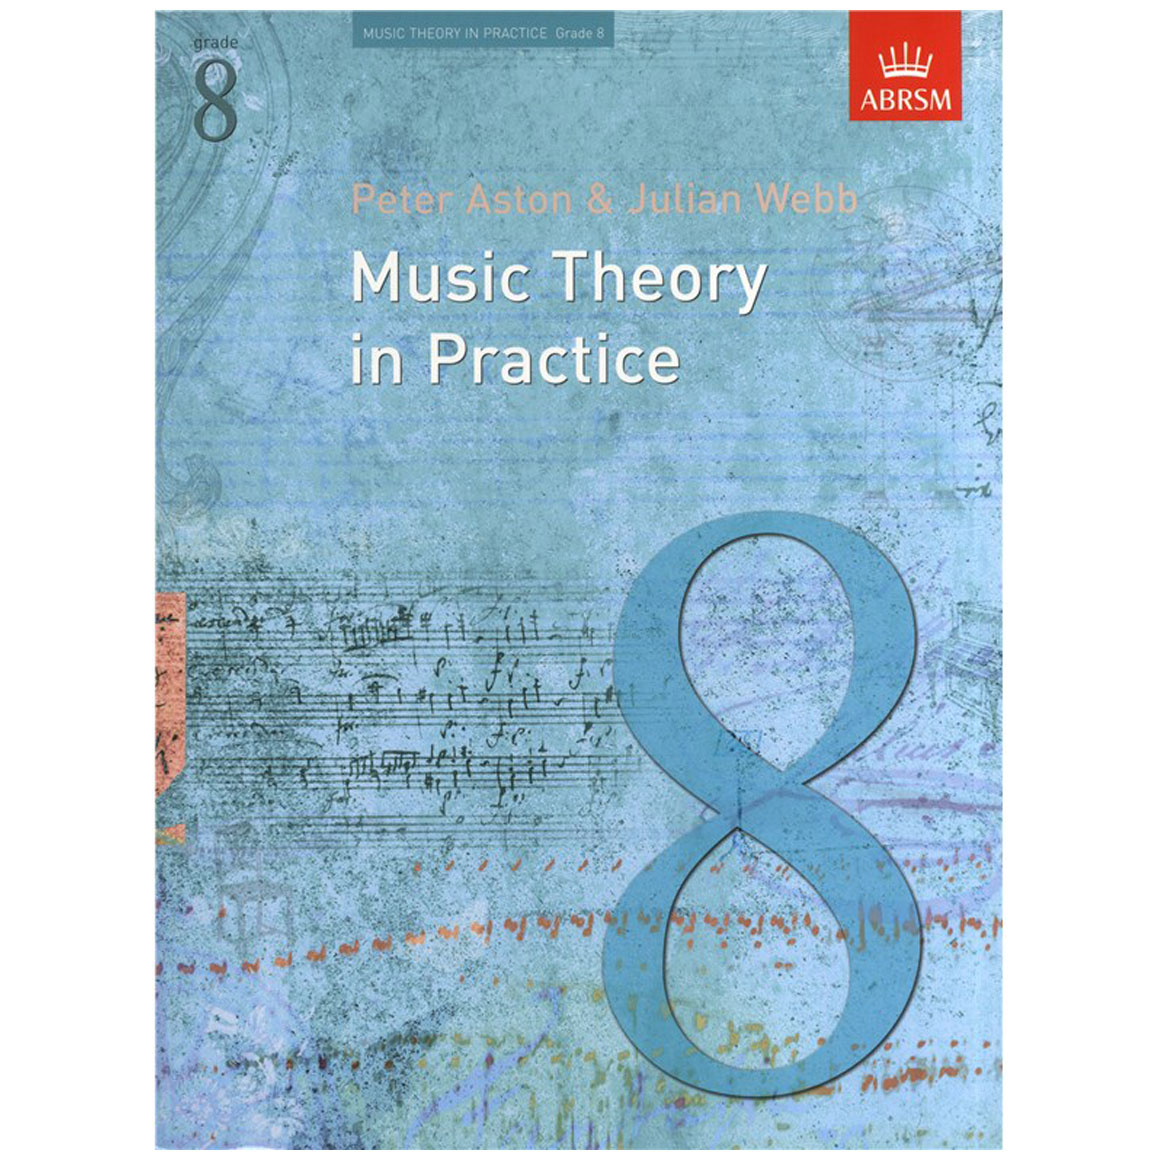 Grade 8 Music Theory - Complete Course